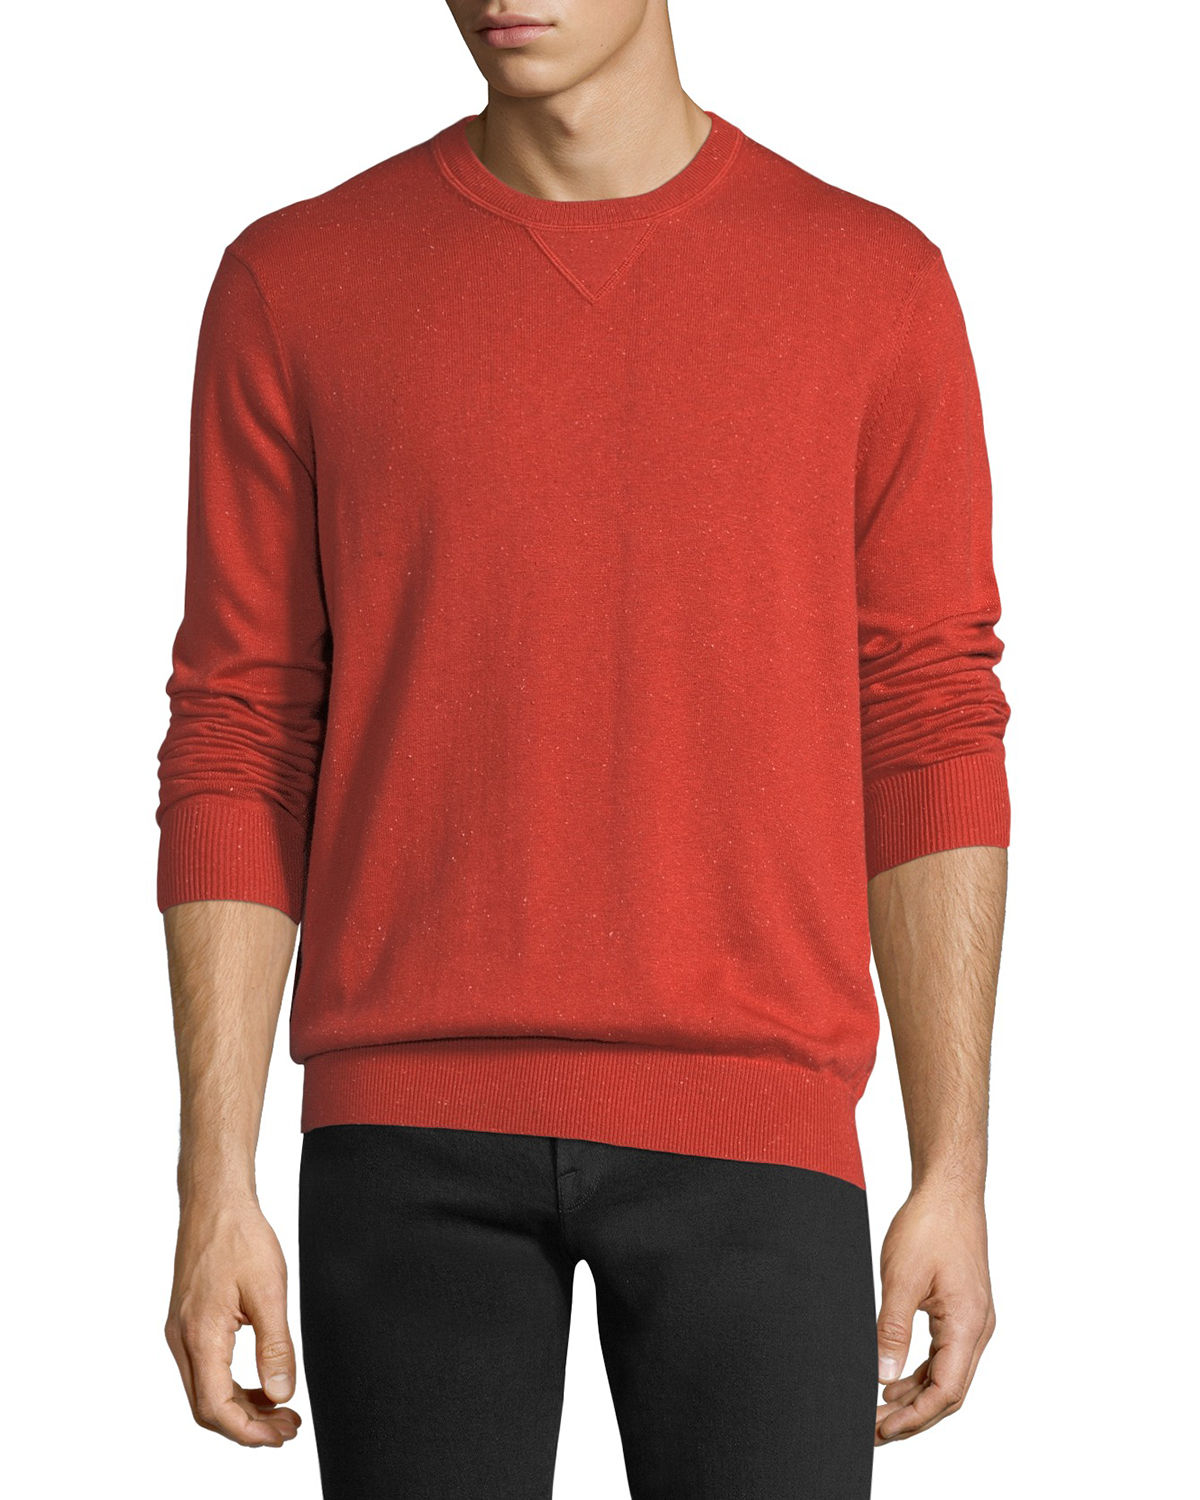 Neiman Marcus T-shirts DONEGAL CREWNECK SWEATSHIRT WITH ELBOW PATCHES